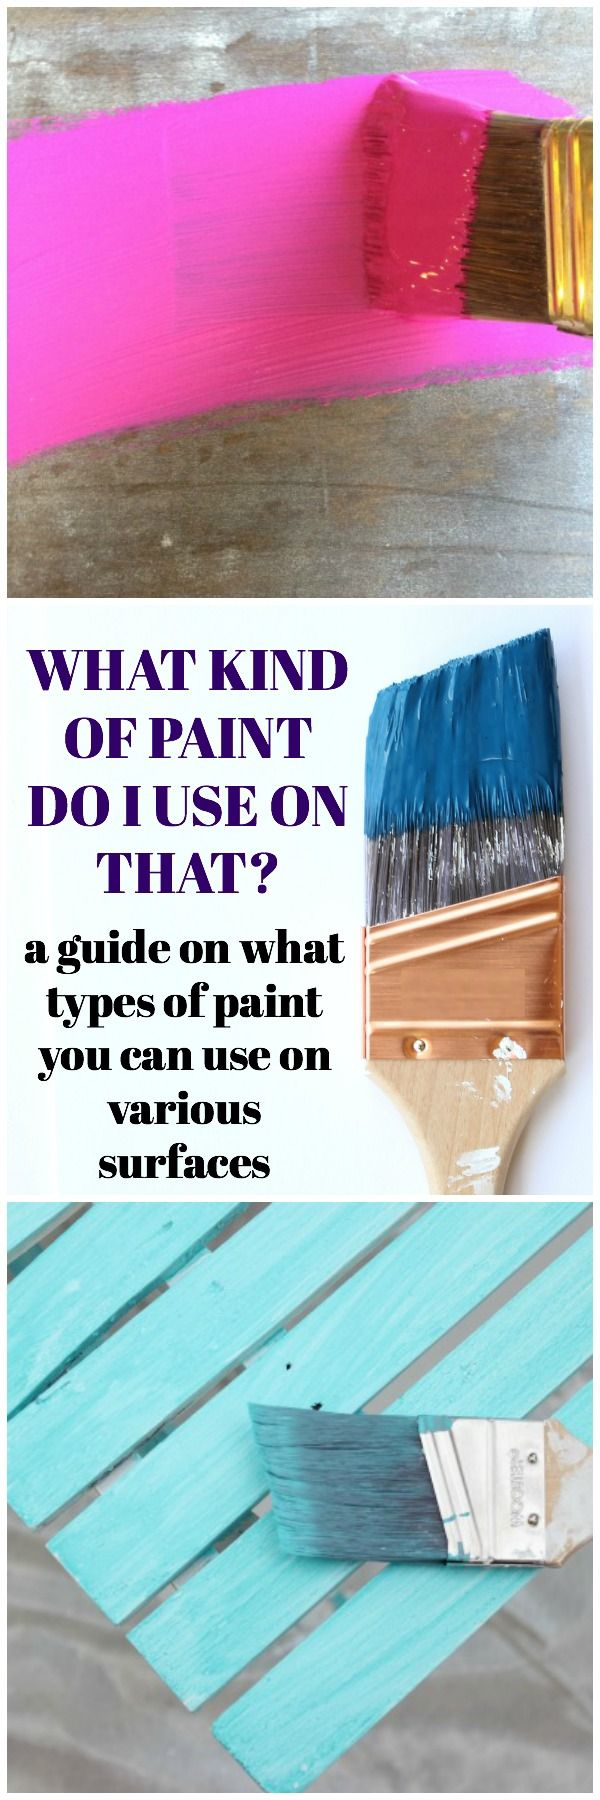 Paint For Furniture best 25+ painting furniture ideas on pinterest | repainting